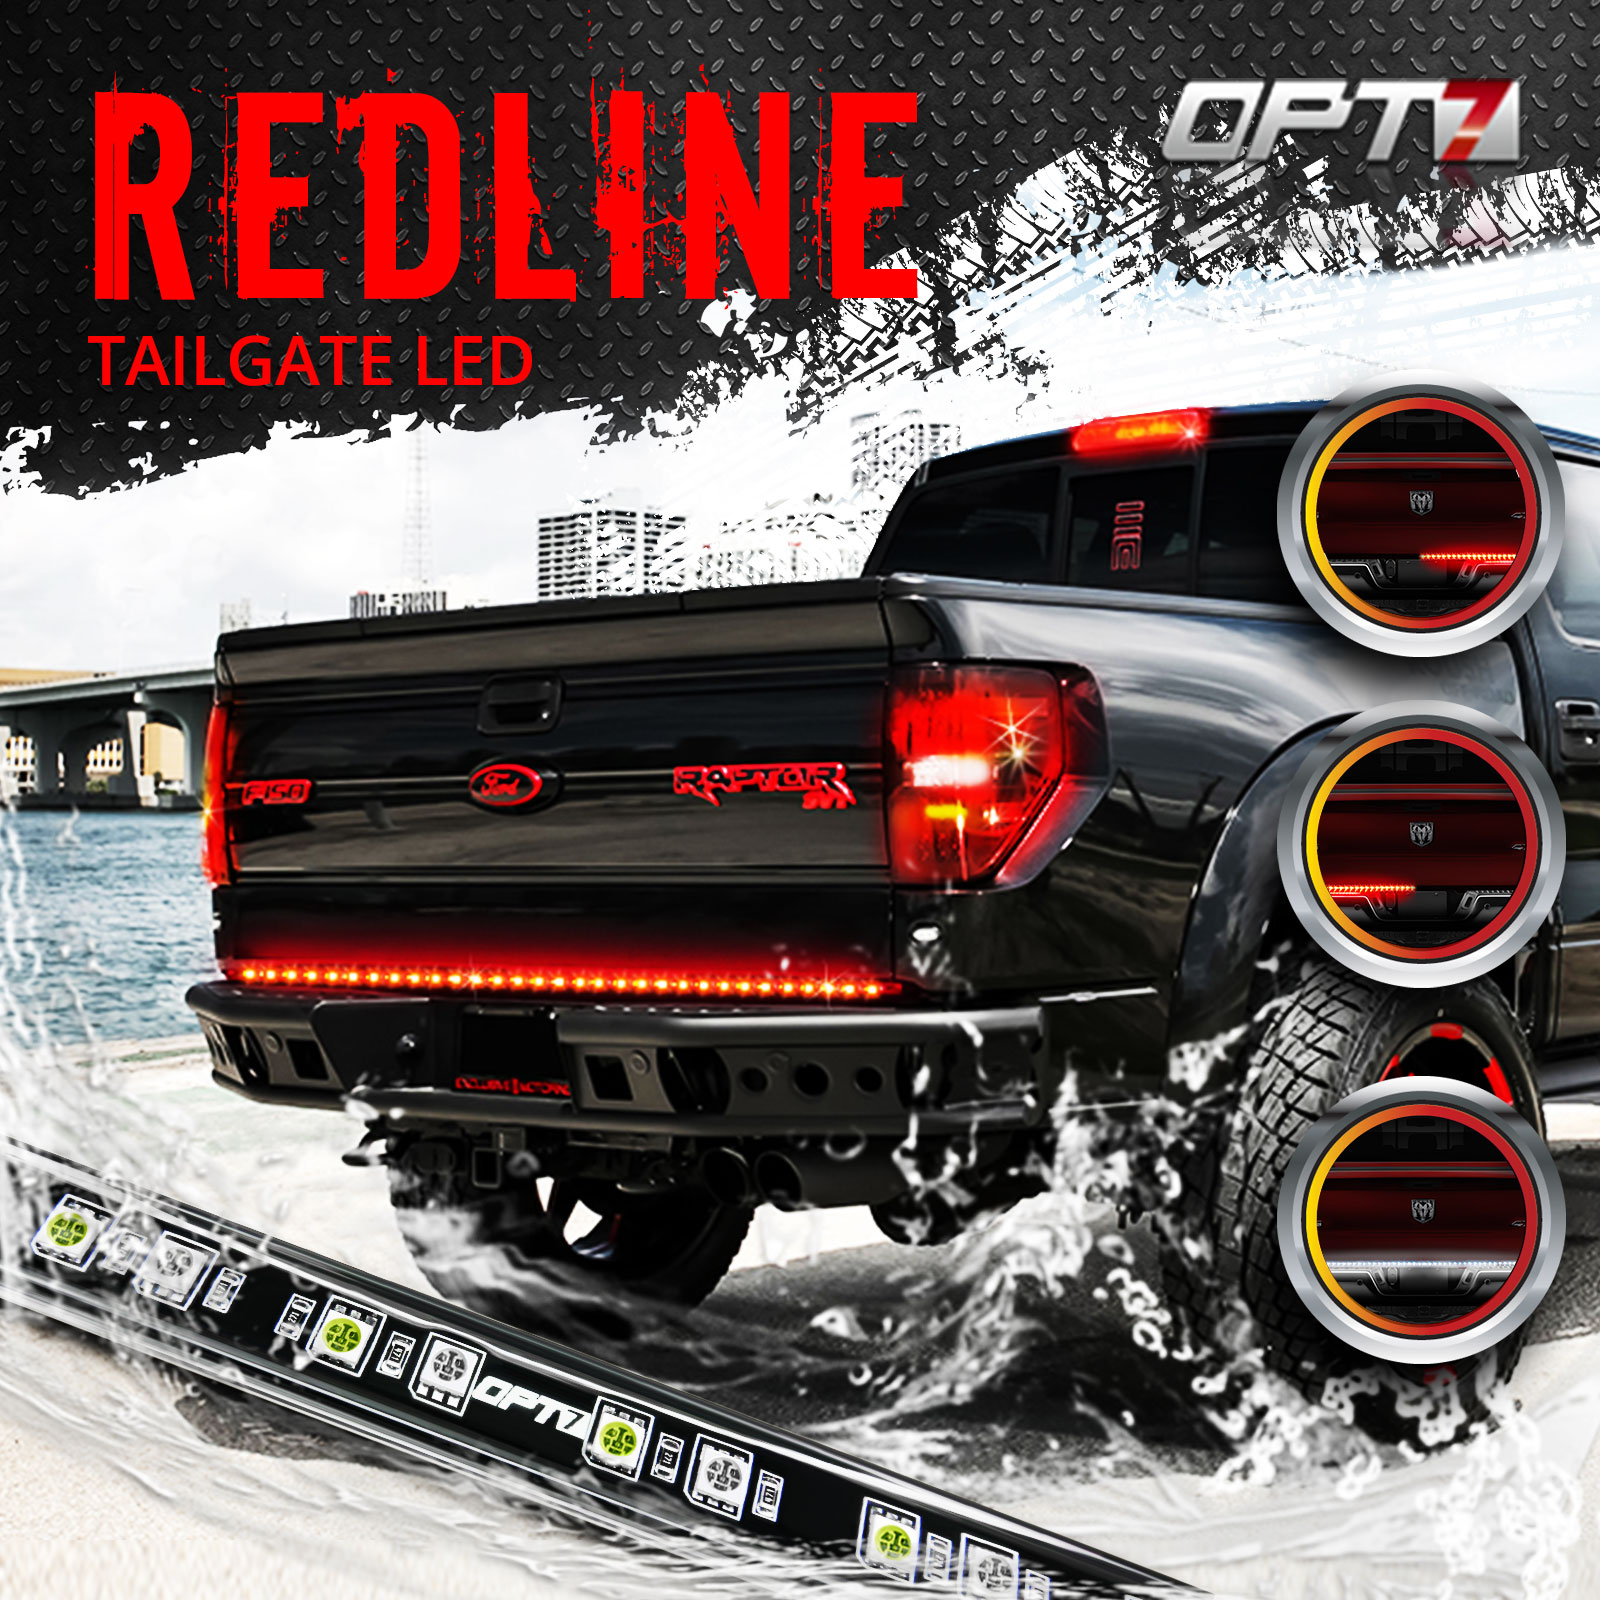 60 redline led tailgate light bar tri core led weatherproof 60 redline led tailgate light bar tri core led weatherproof full function 2yr warranty easy screw less install durable rigid aluminum reverse aloadofball Gallery